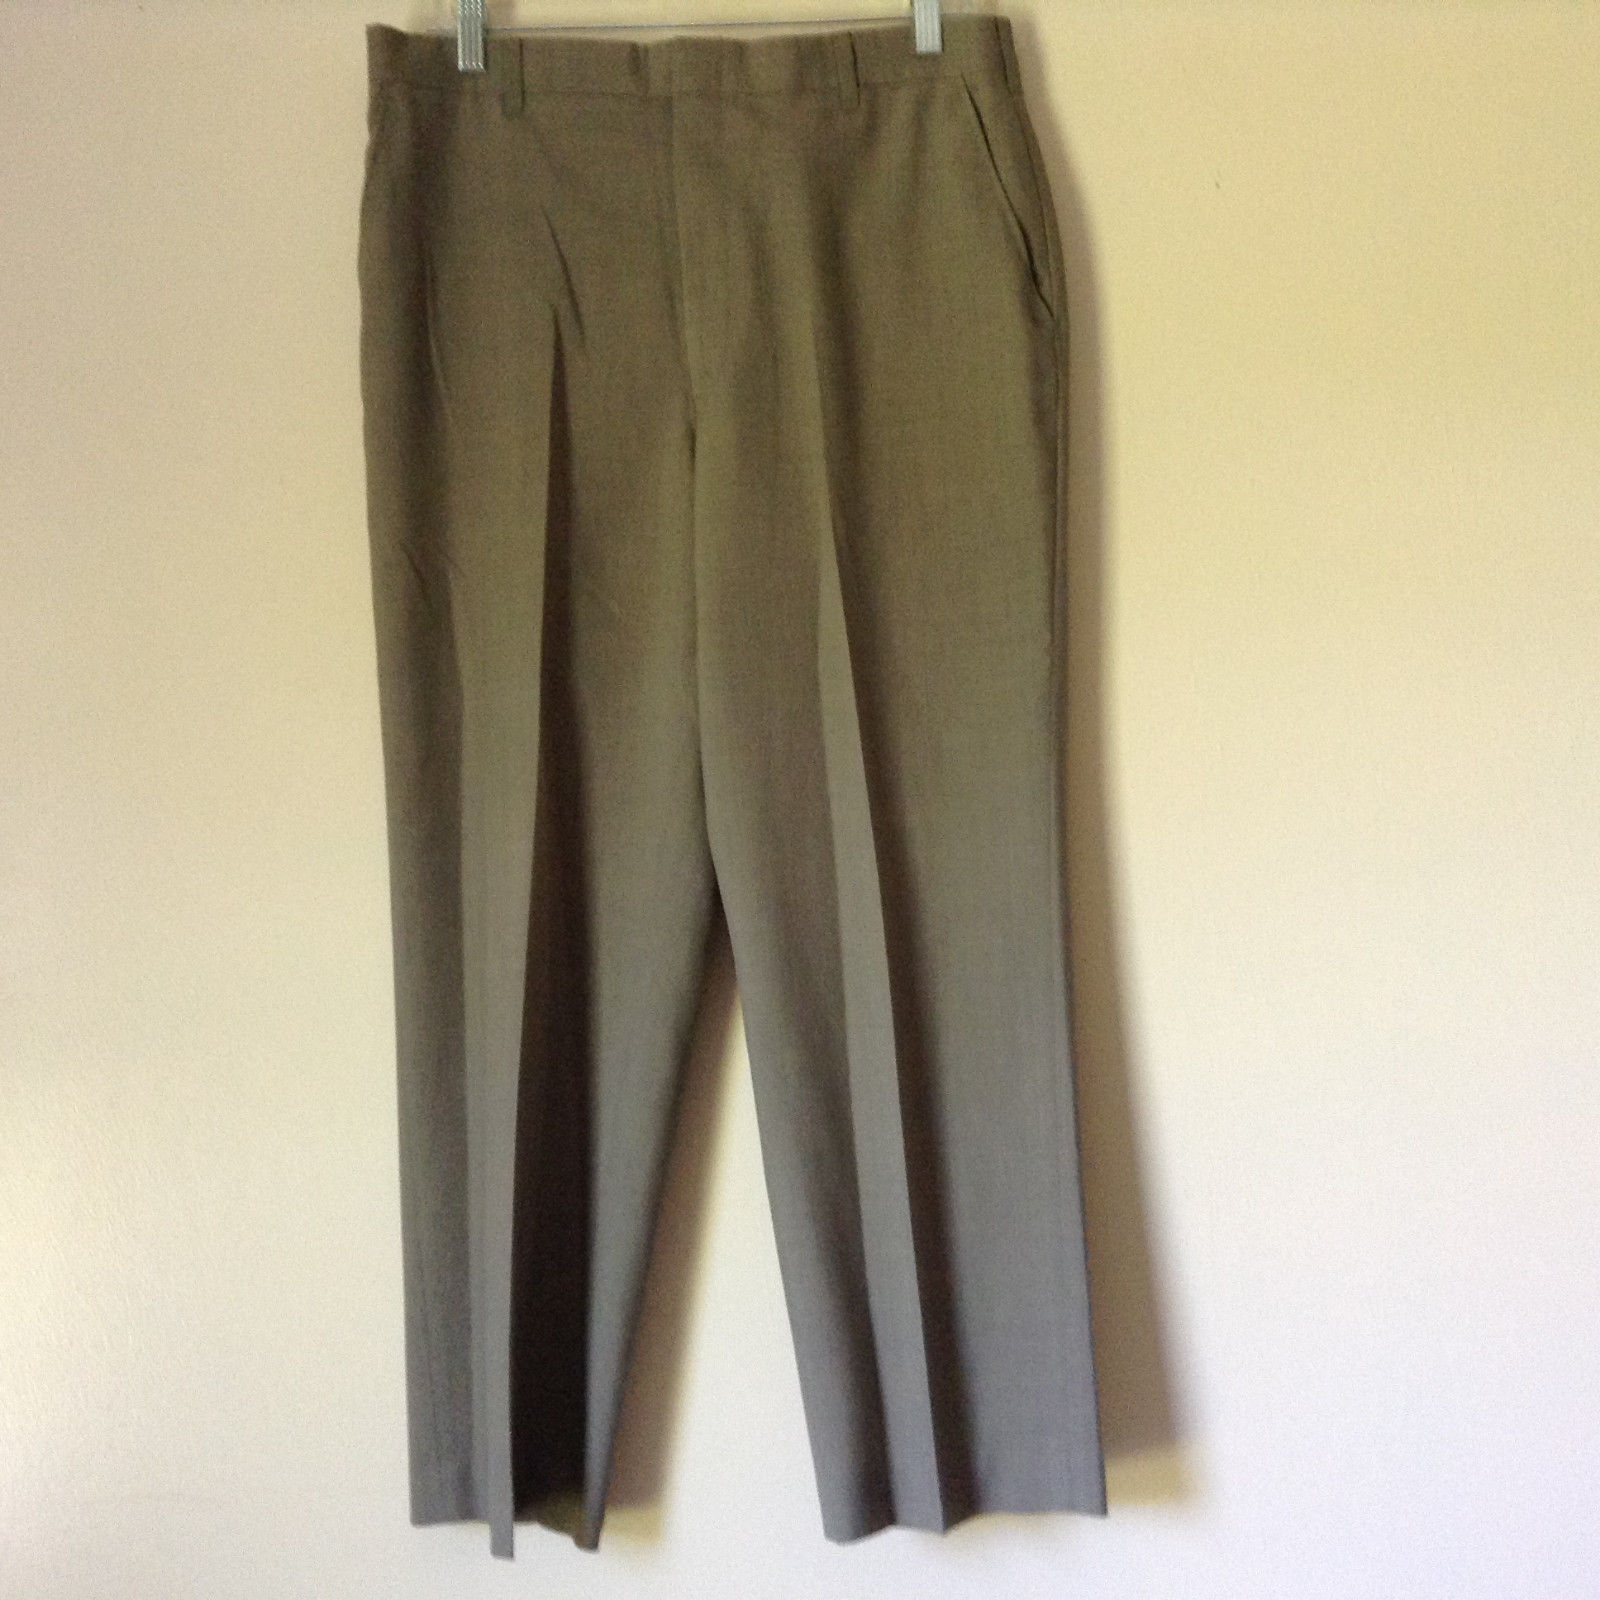 Grayish Colored Dress Pants by Adams Row by Anderson Little Measurements Below